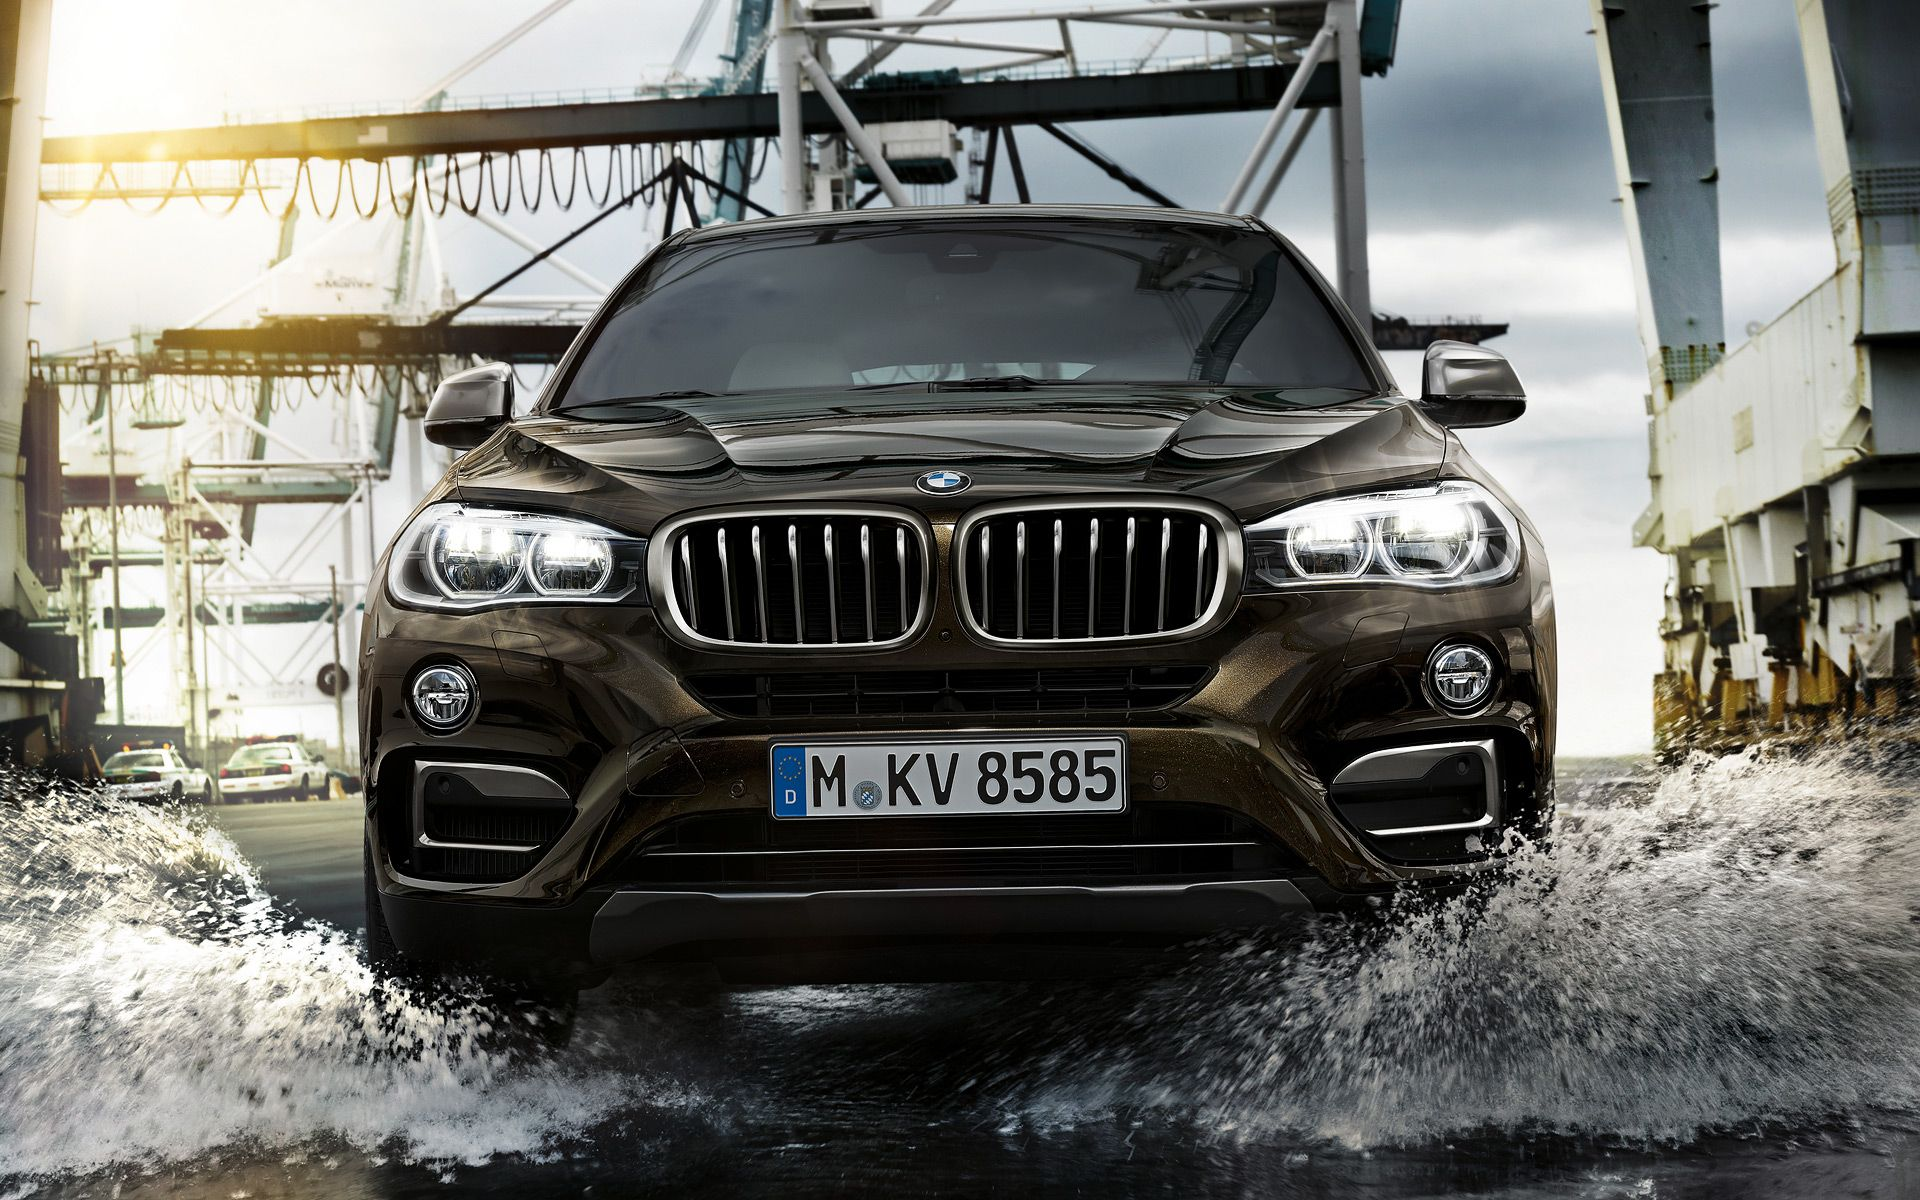 BMW X6 Wallpapers - Top Free BMW X6 Backgrounds ...